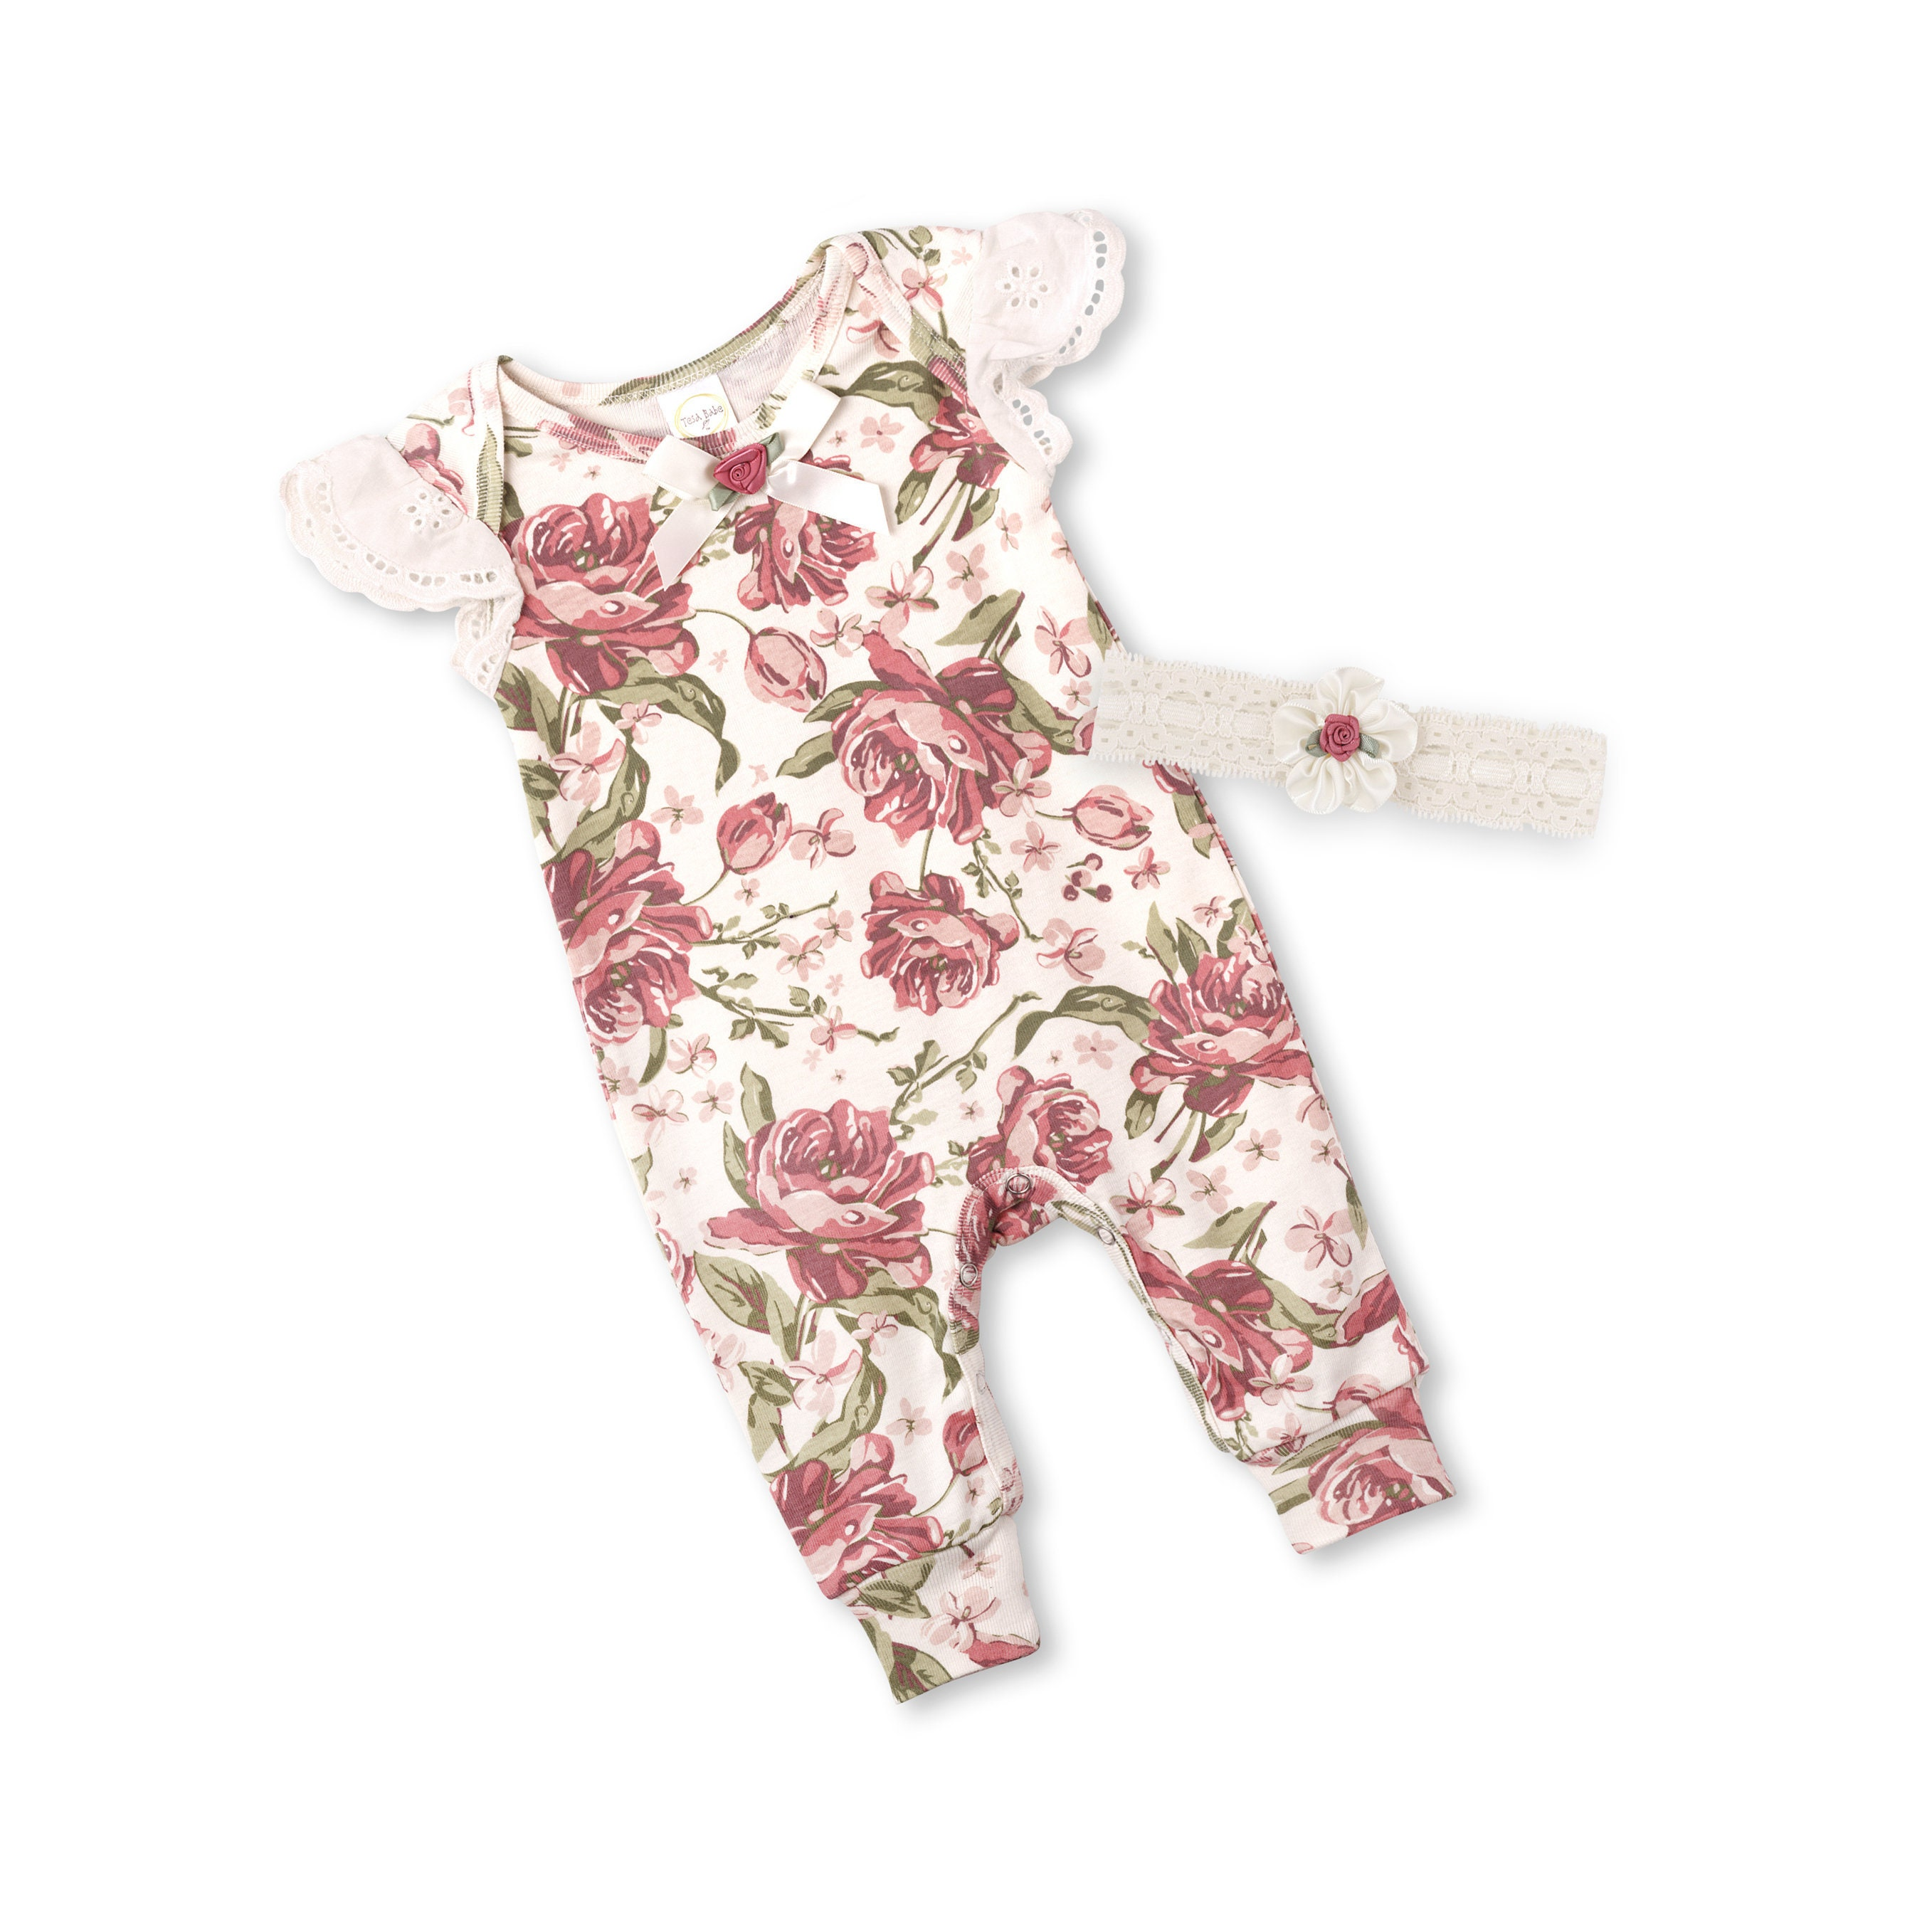 7e345d7fb Newborn Baby Girl Coming Home Outfit Baby Girl Lace Romper